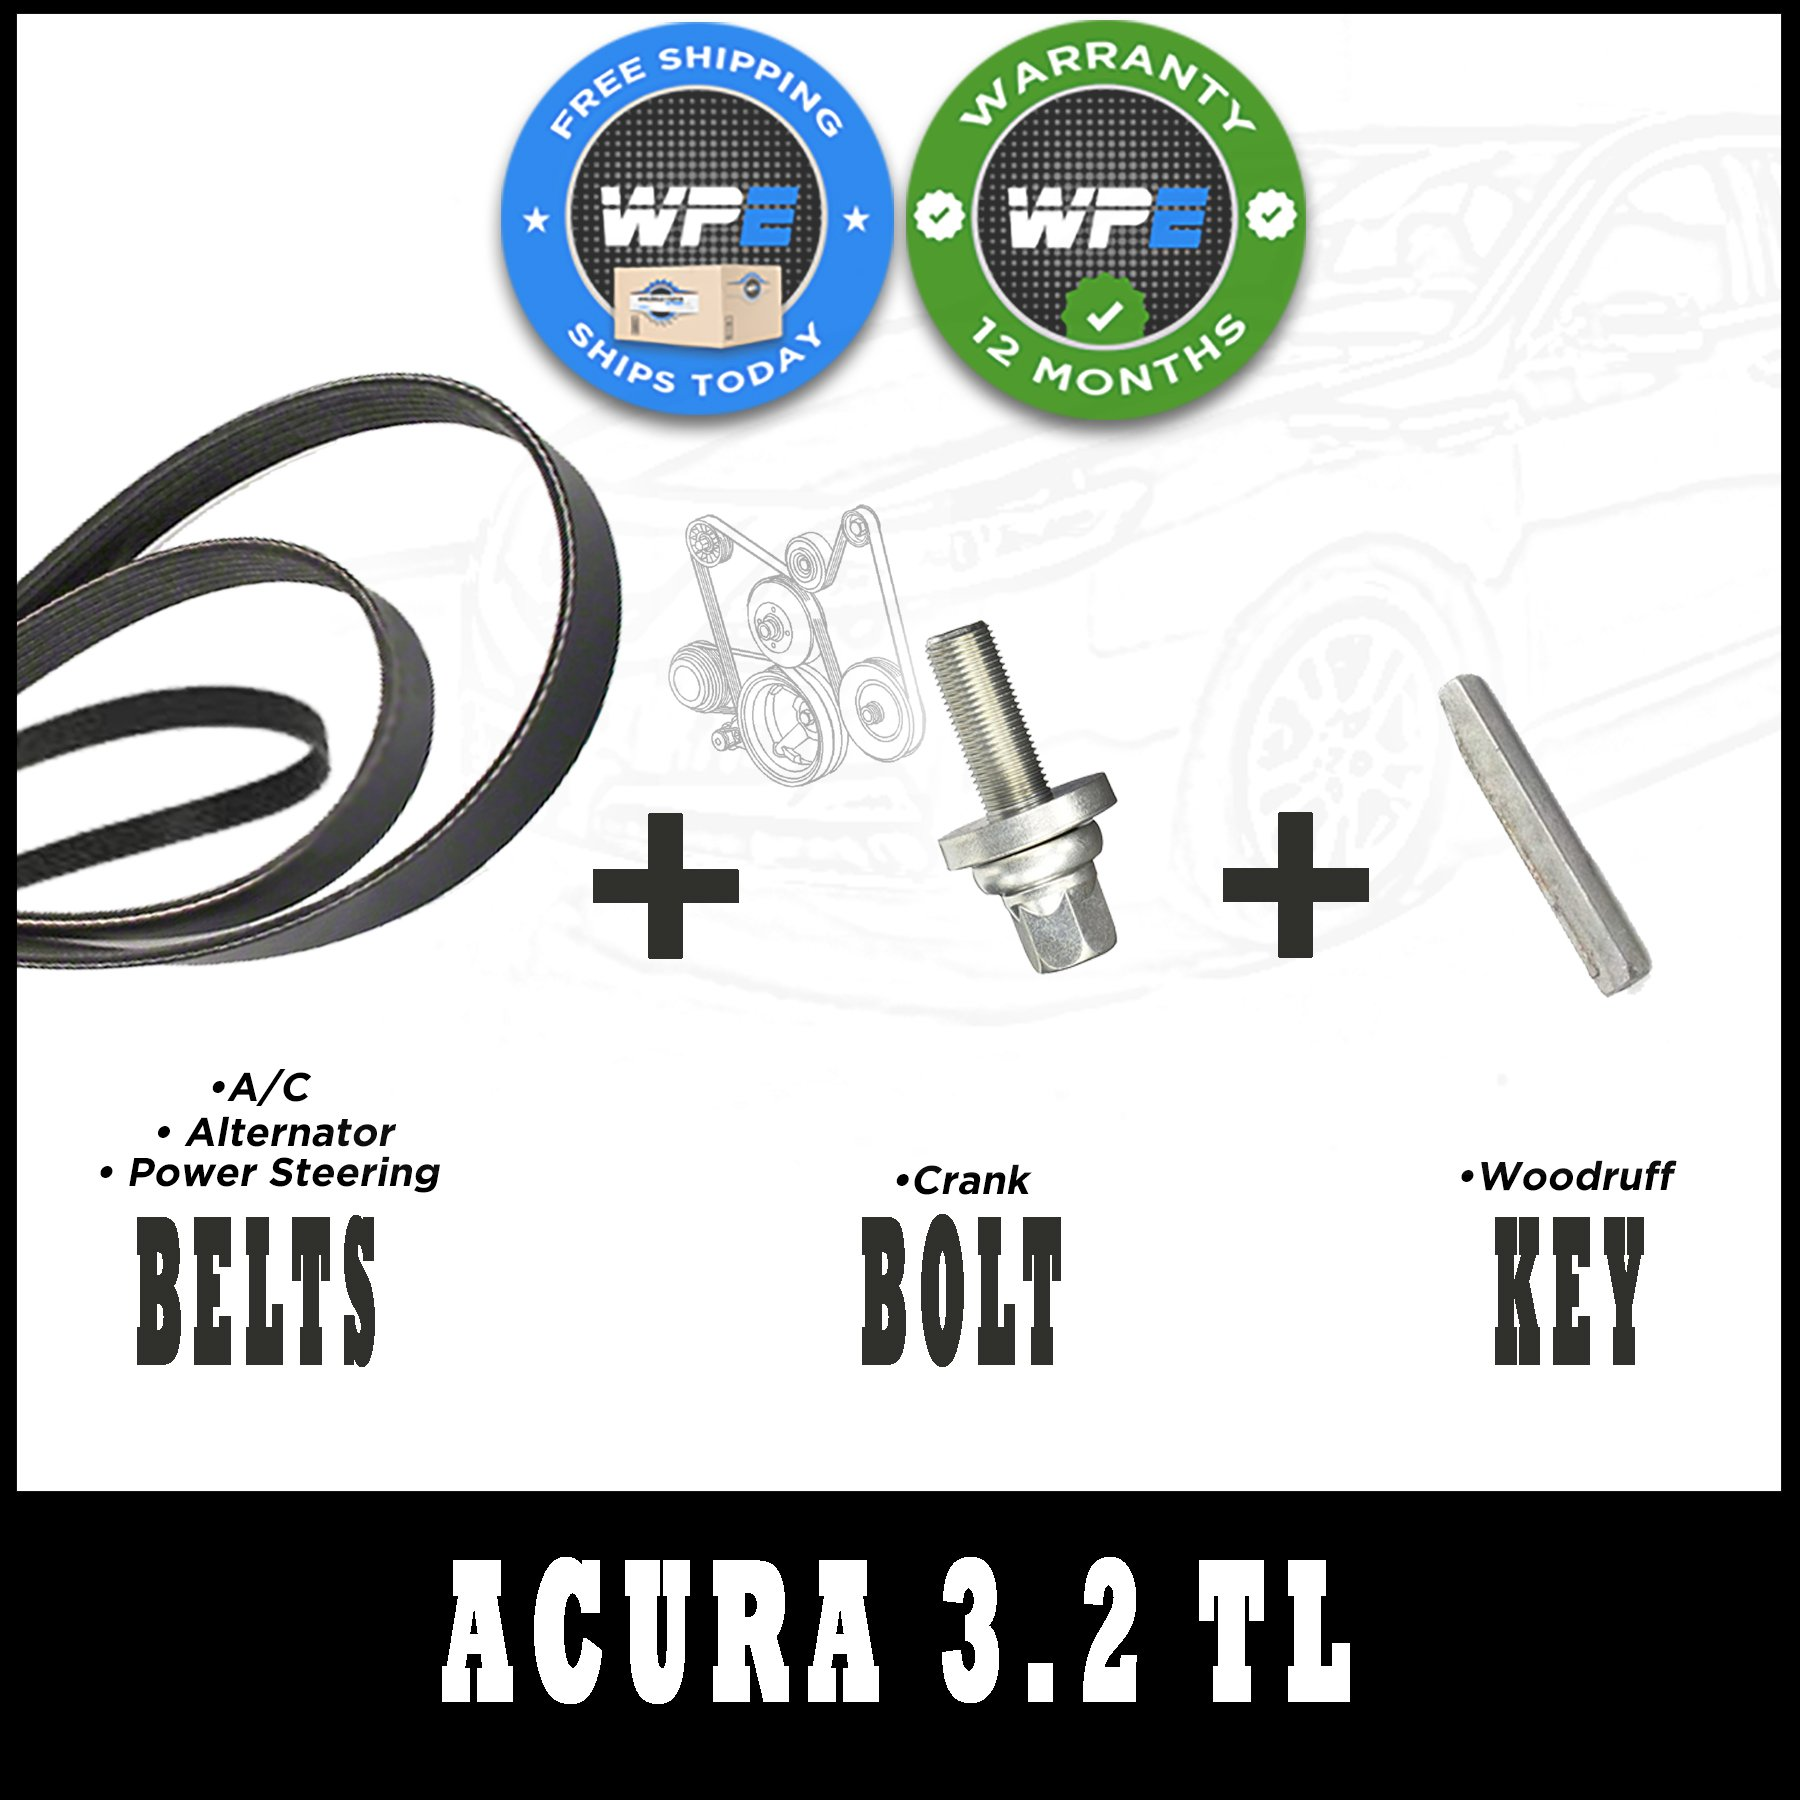 1996-1998 Acura 3.2 TL Harmonic Balancer Replacement Kit